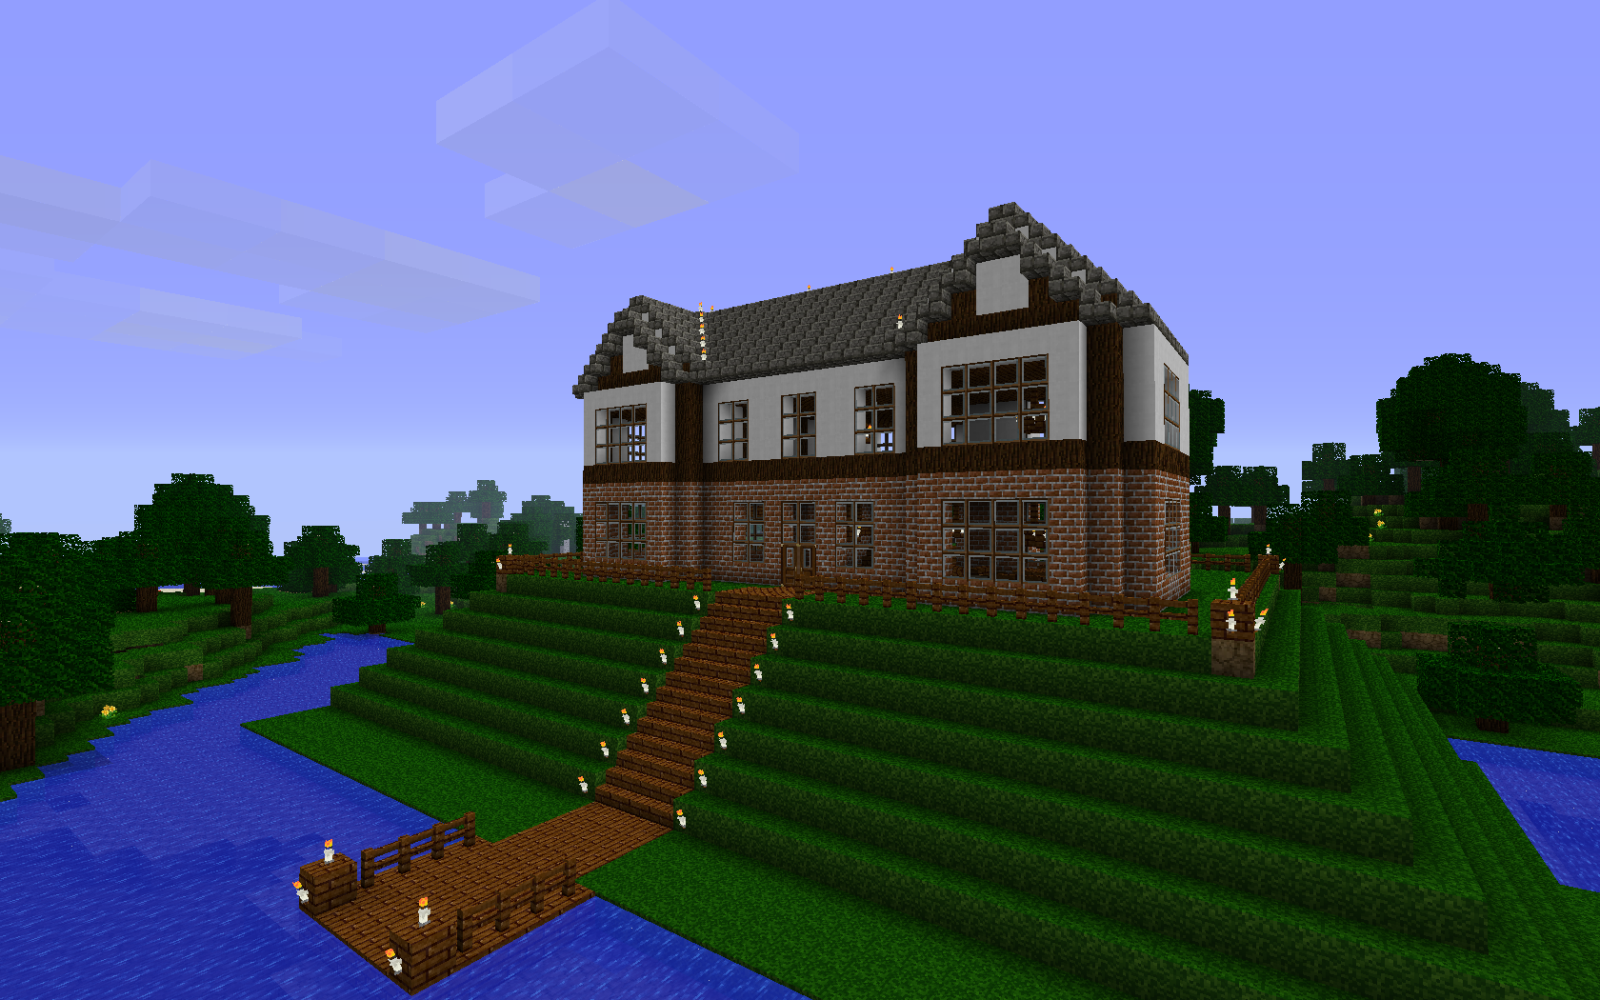 minecraft homes | Aesthetically Pleasing Homes/Buildings ...